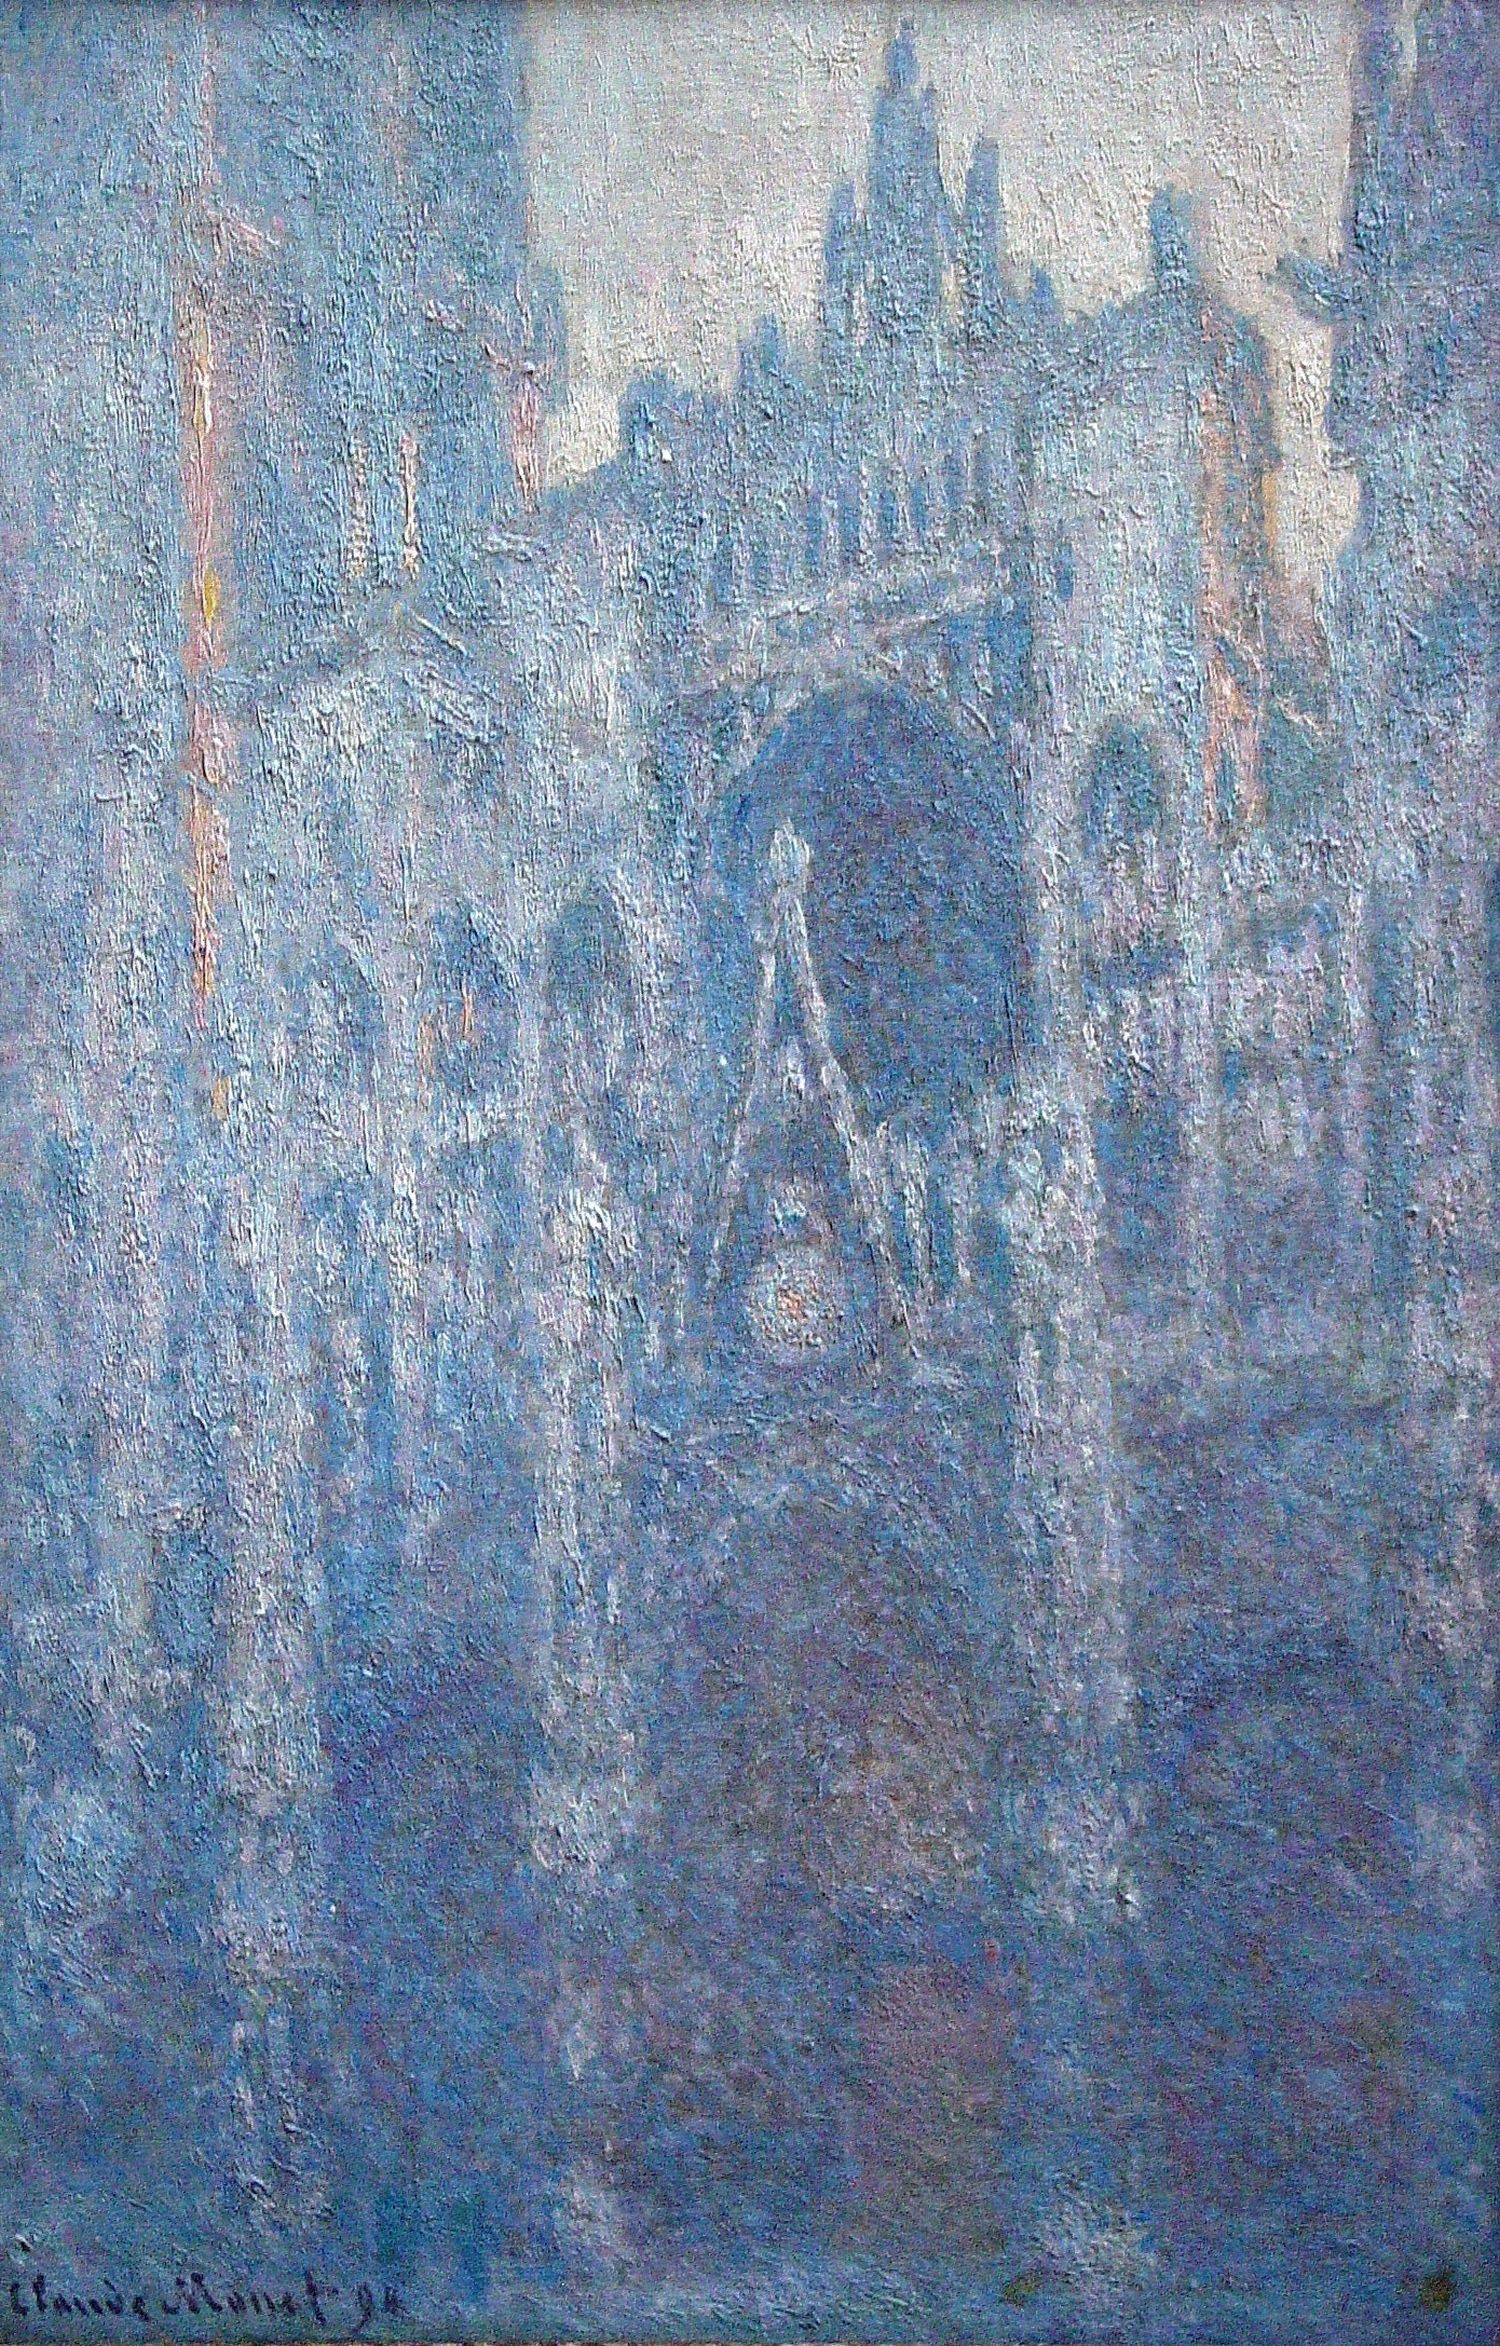 Monet, Rouen Cathedral clear day